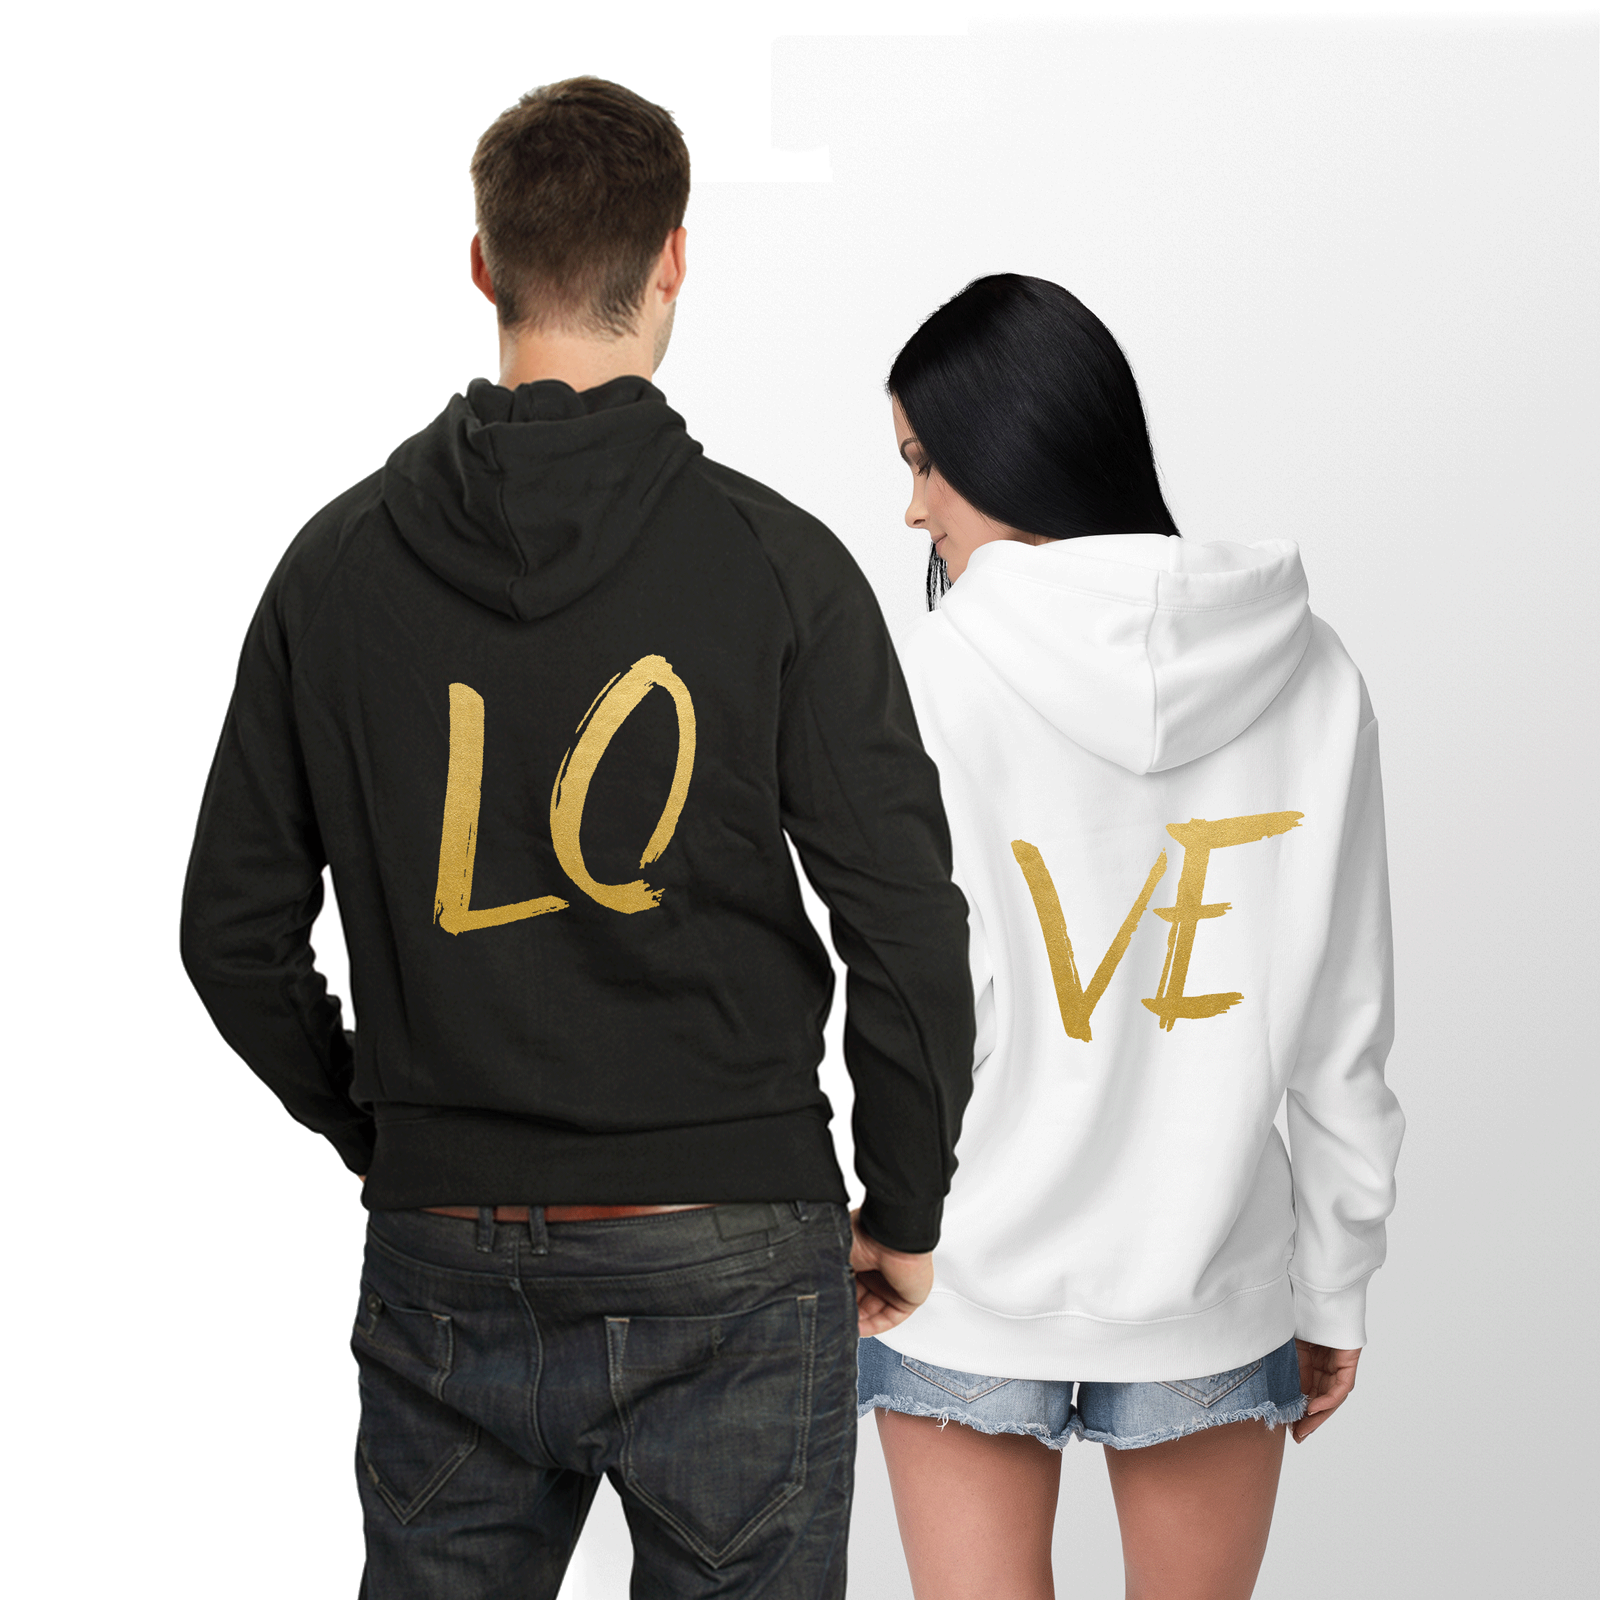 711592b2bc4b Black hoodies with white print Black and white hoodie with golden print